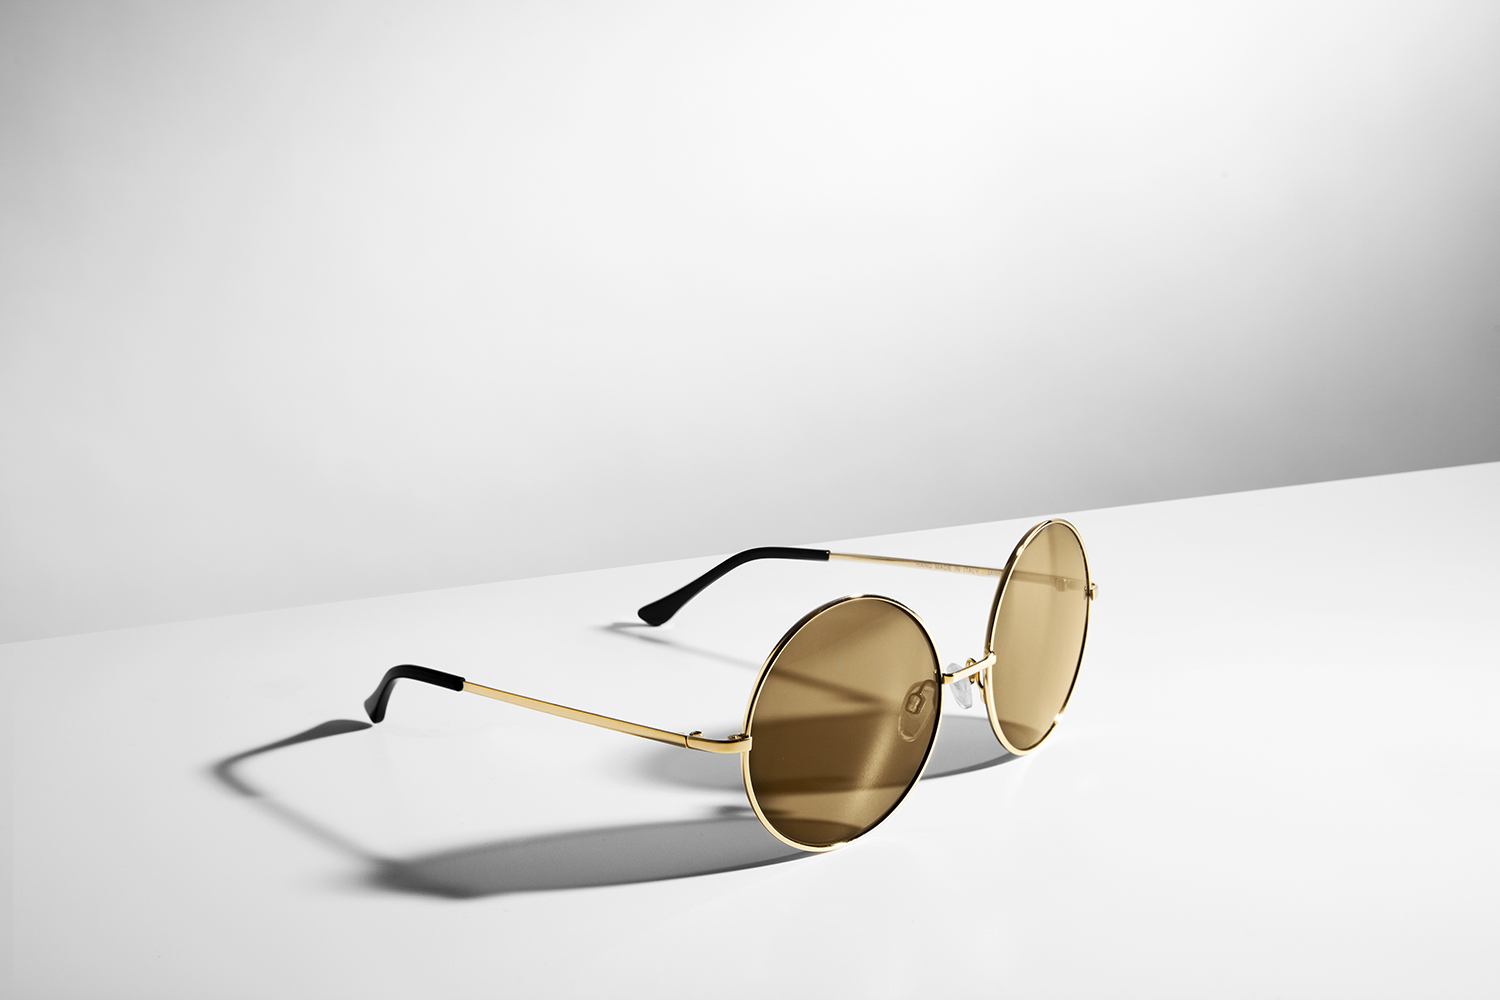 Round Fashion Sunglasses photo by Molly Dickson